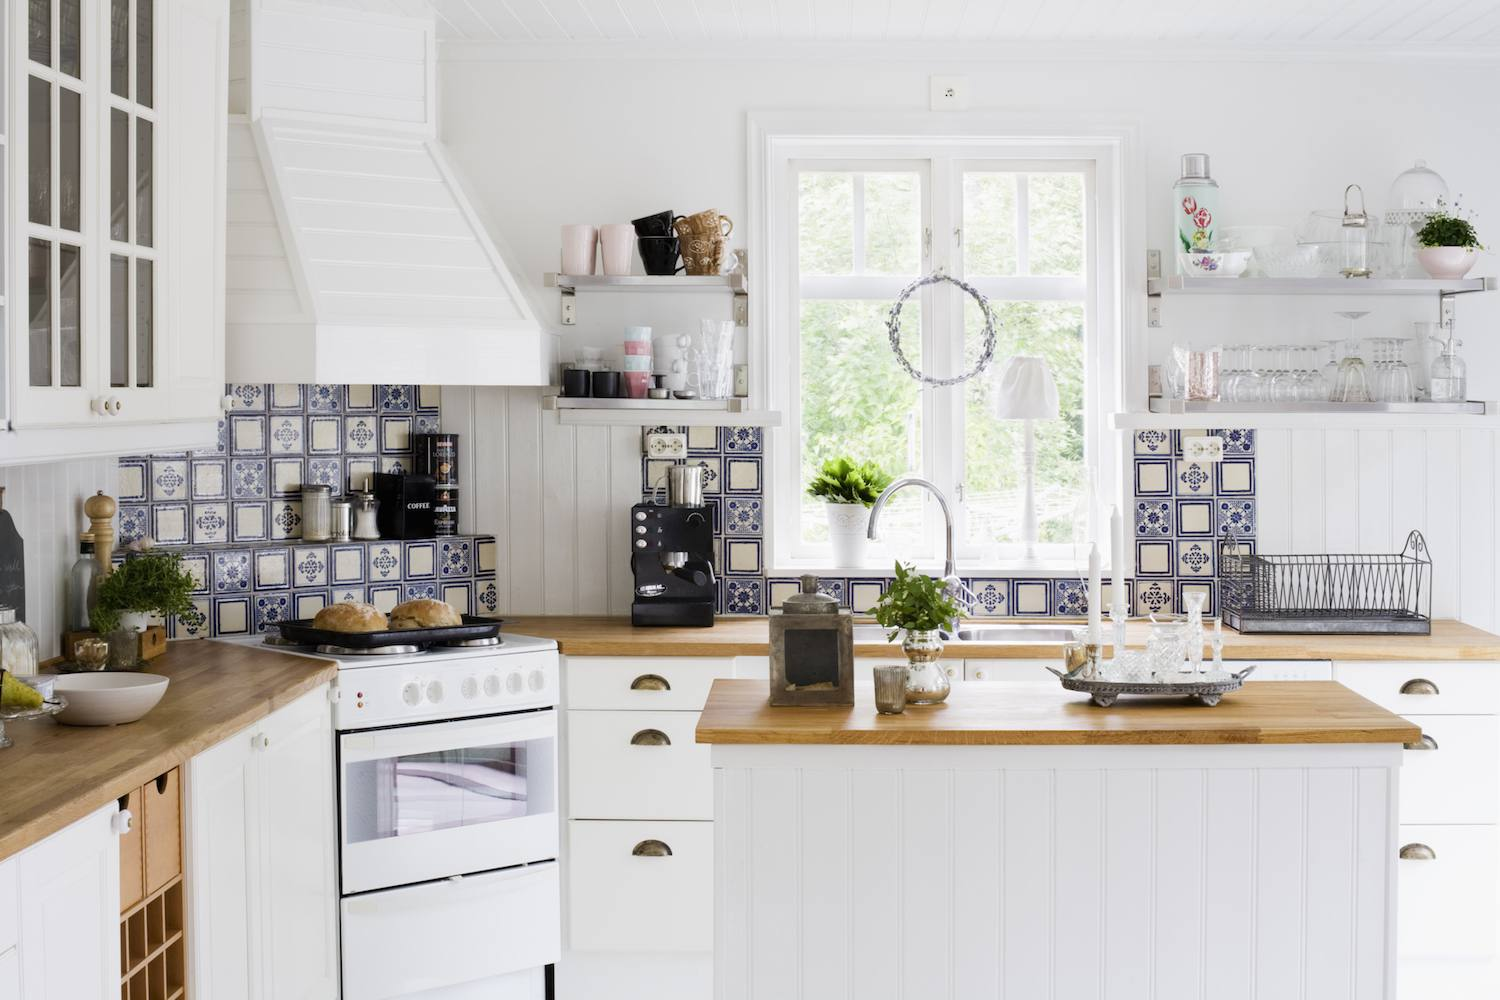 Clean your countertops regularly